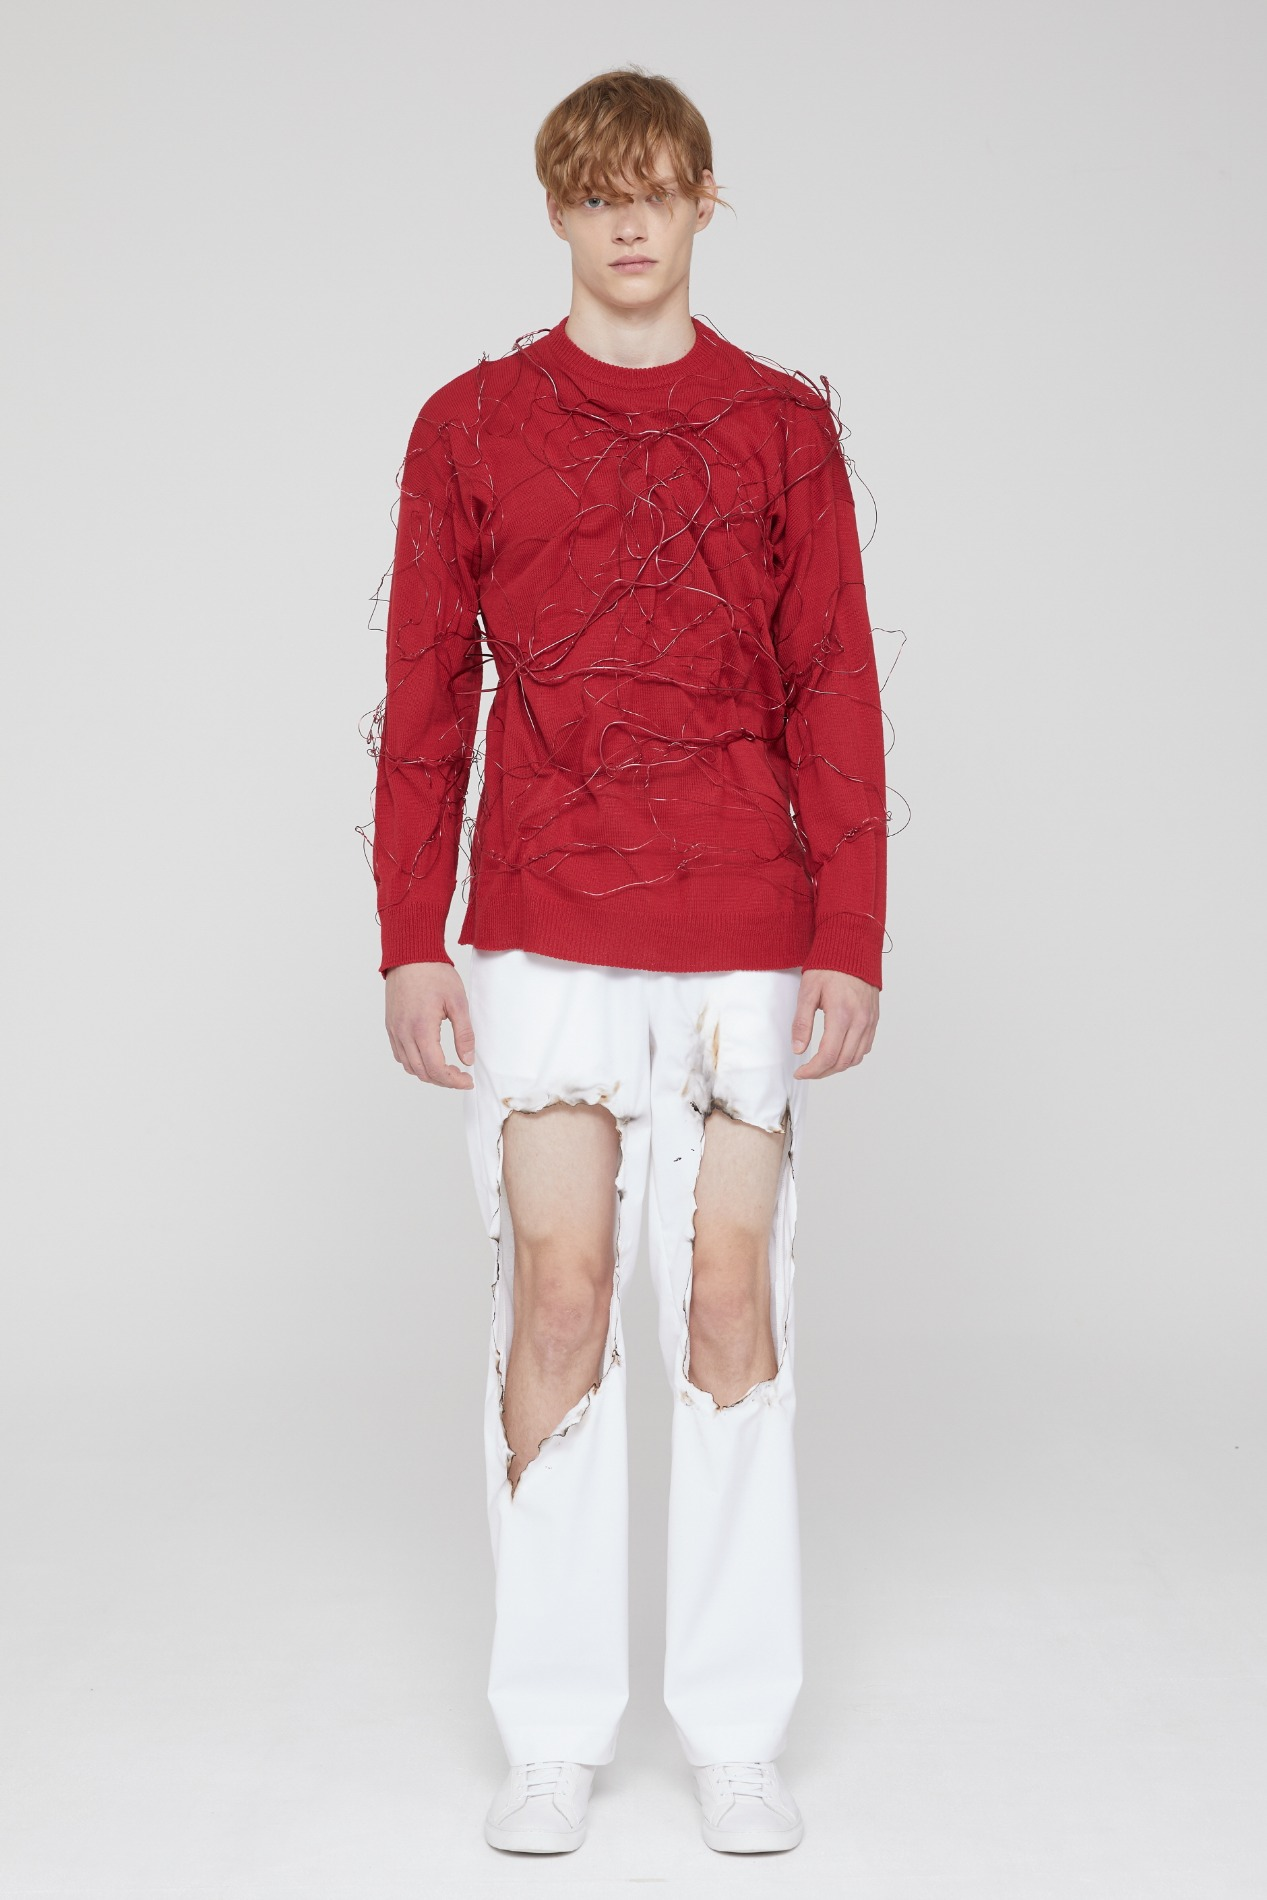 [ATELIER LINE] THORN KNIT (RED)